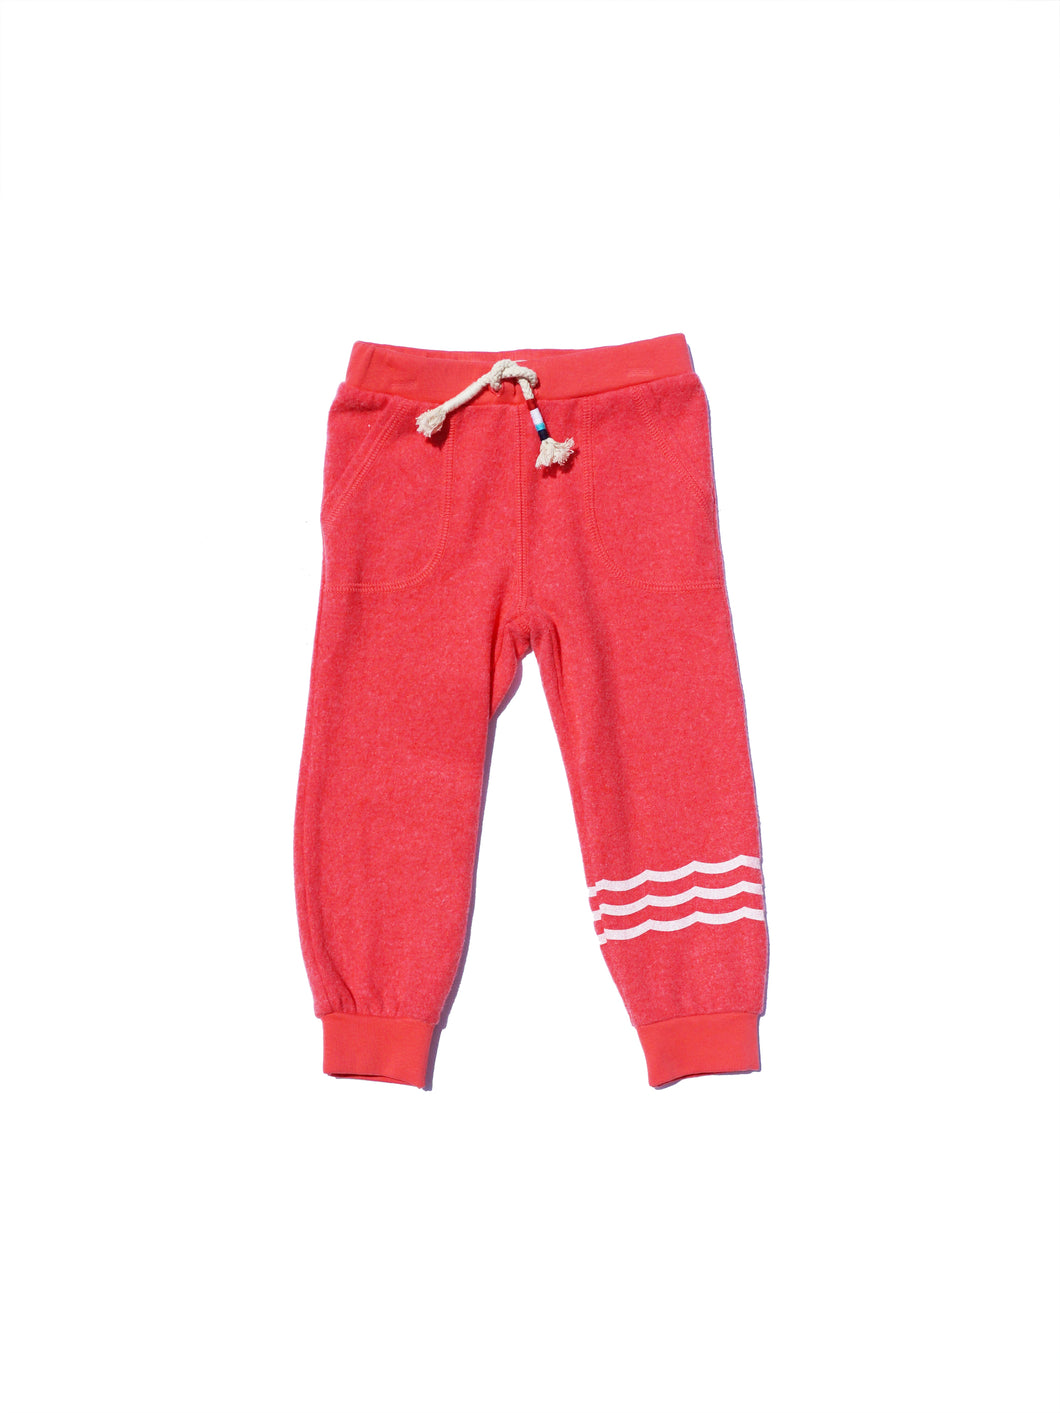 Watermelon Waves Baby Hacci Jogger